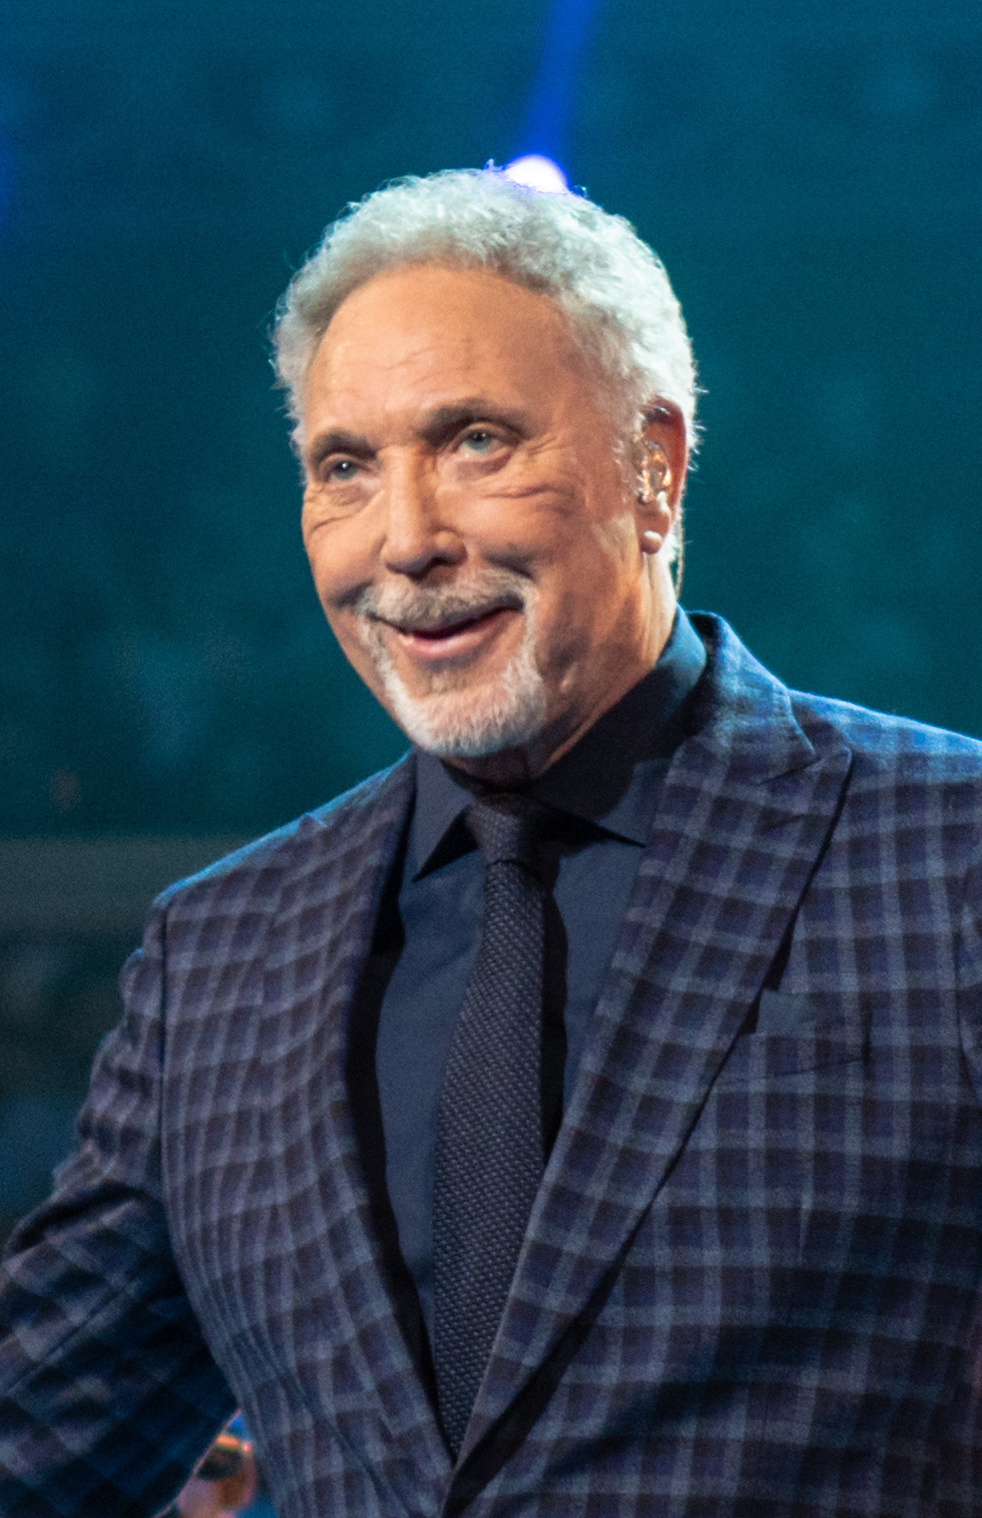 Tom Jones (singer) - Wikipedia